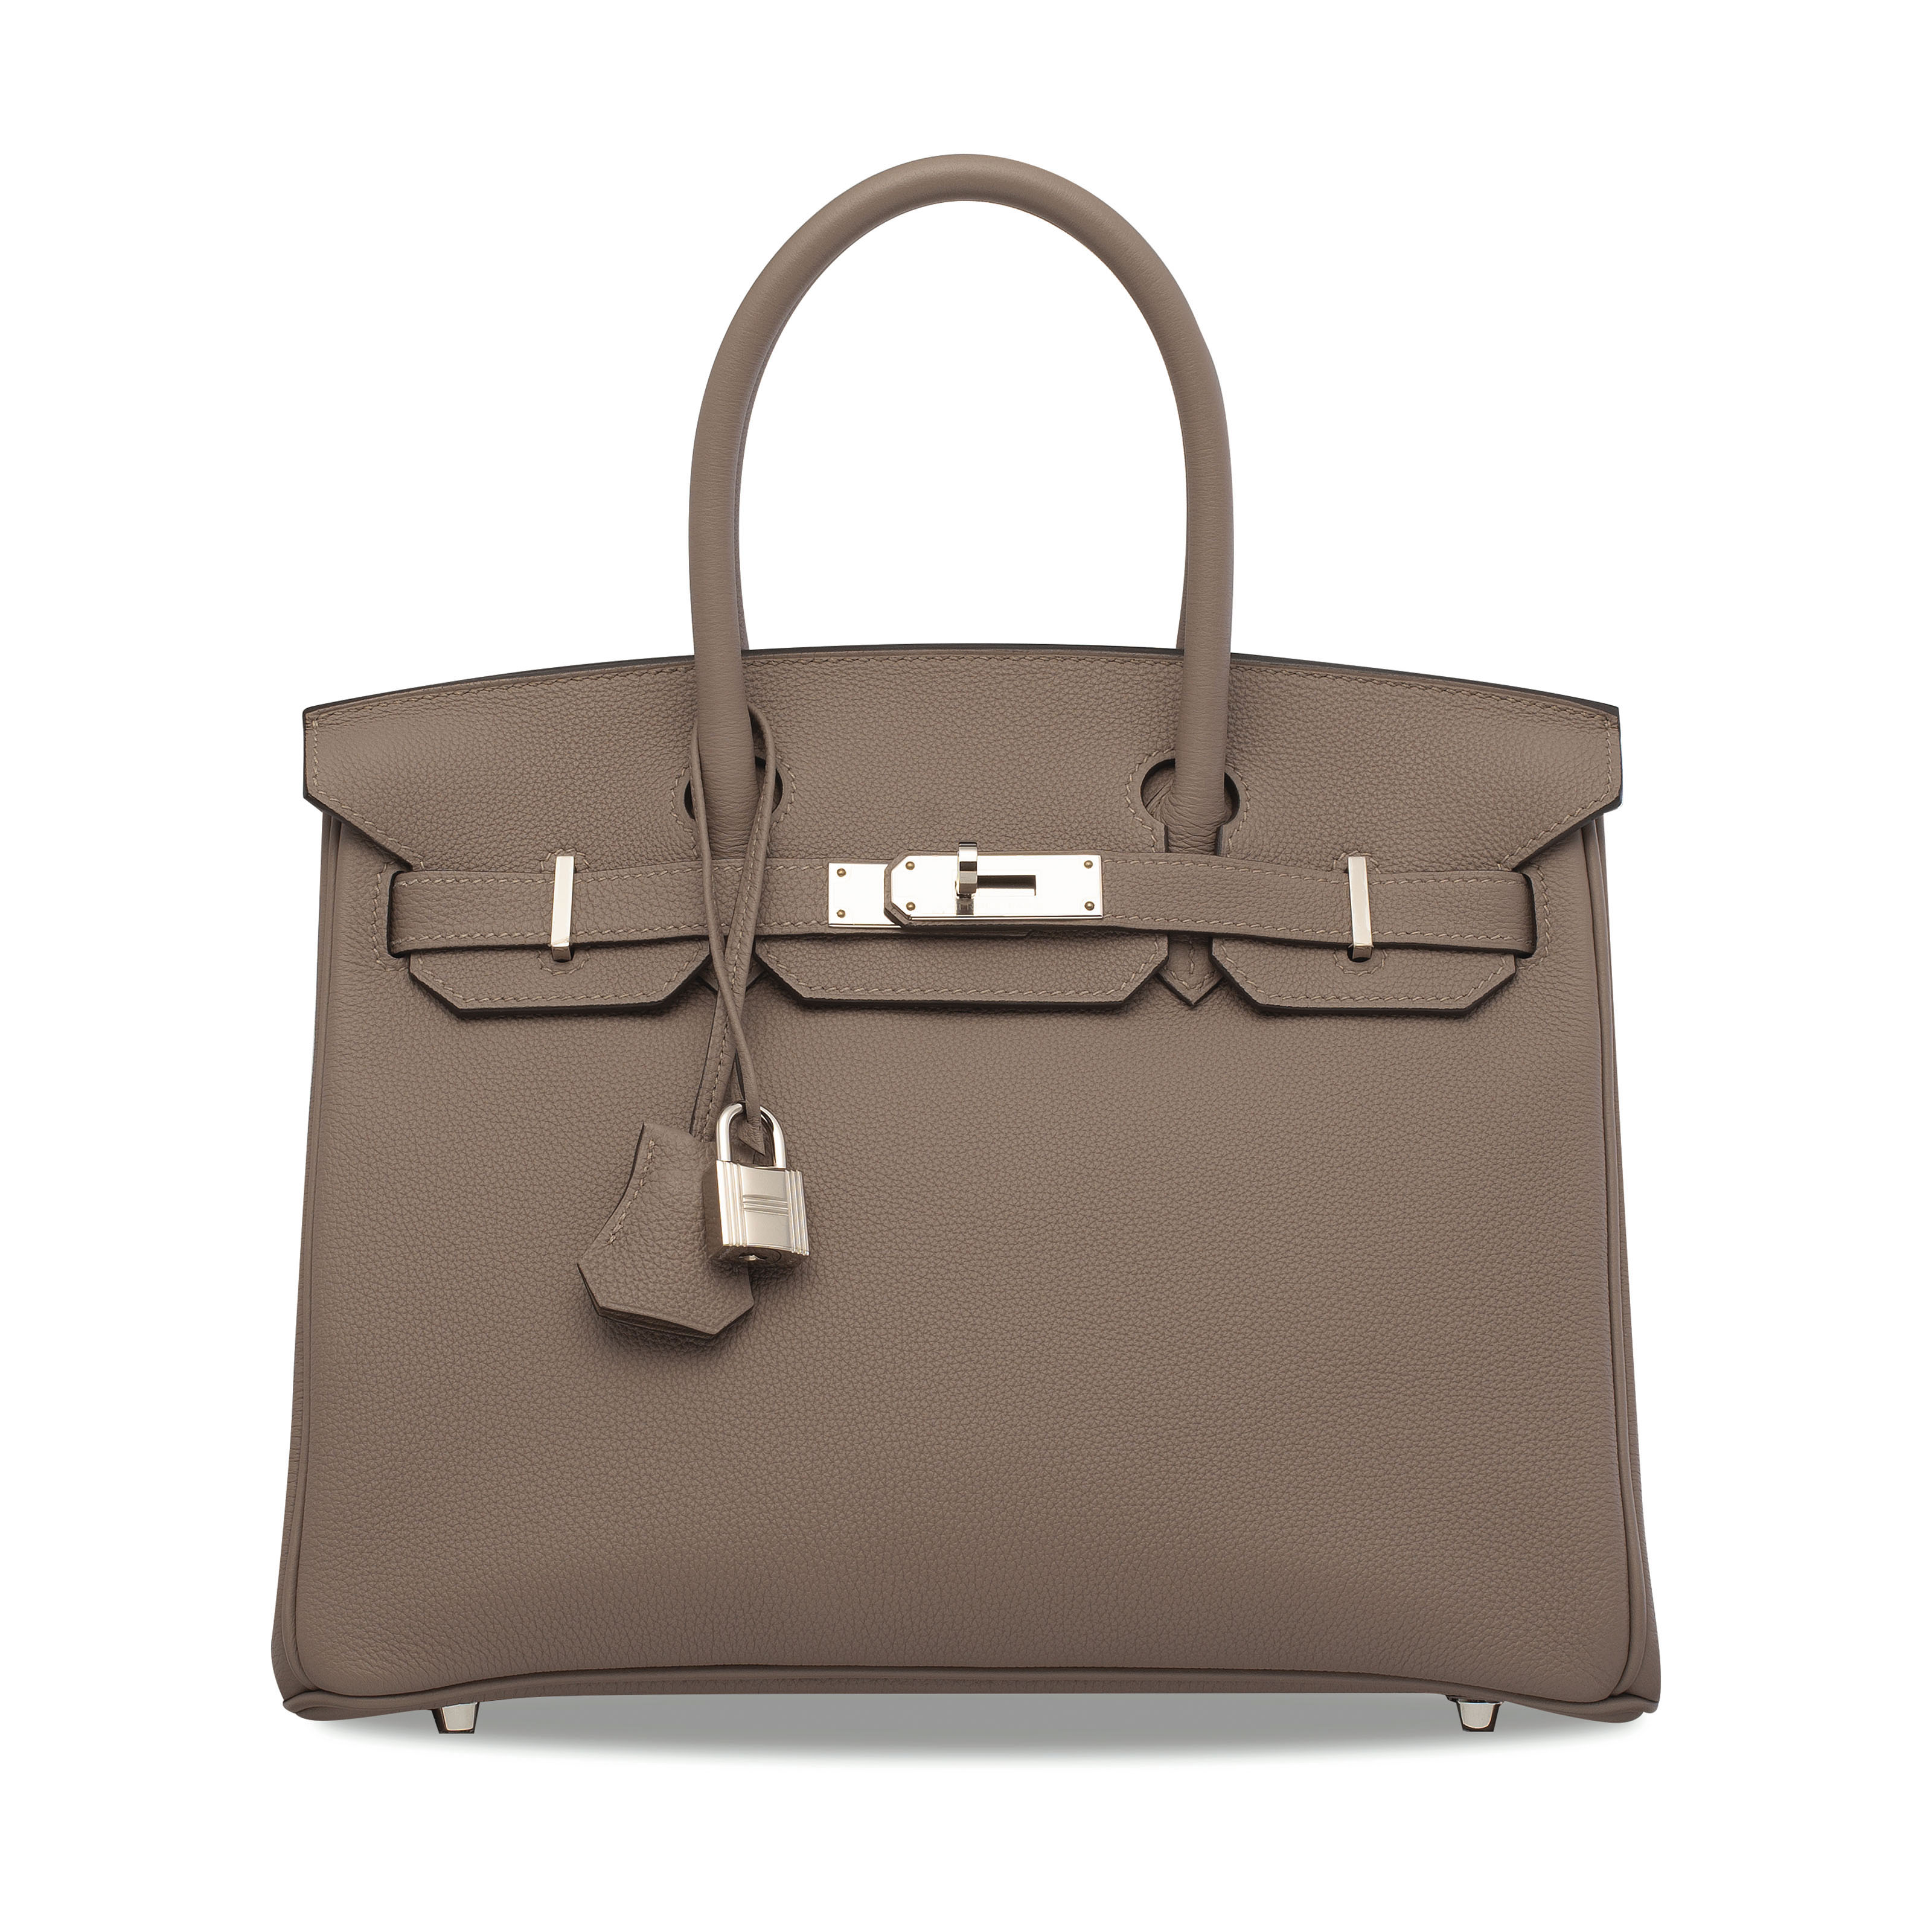 A GRIS ASPHALTE EVERCOLOR LEATHER BIRKIN 30 WITH PALLADIUM HARDWARE